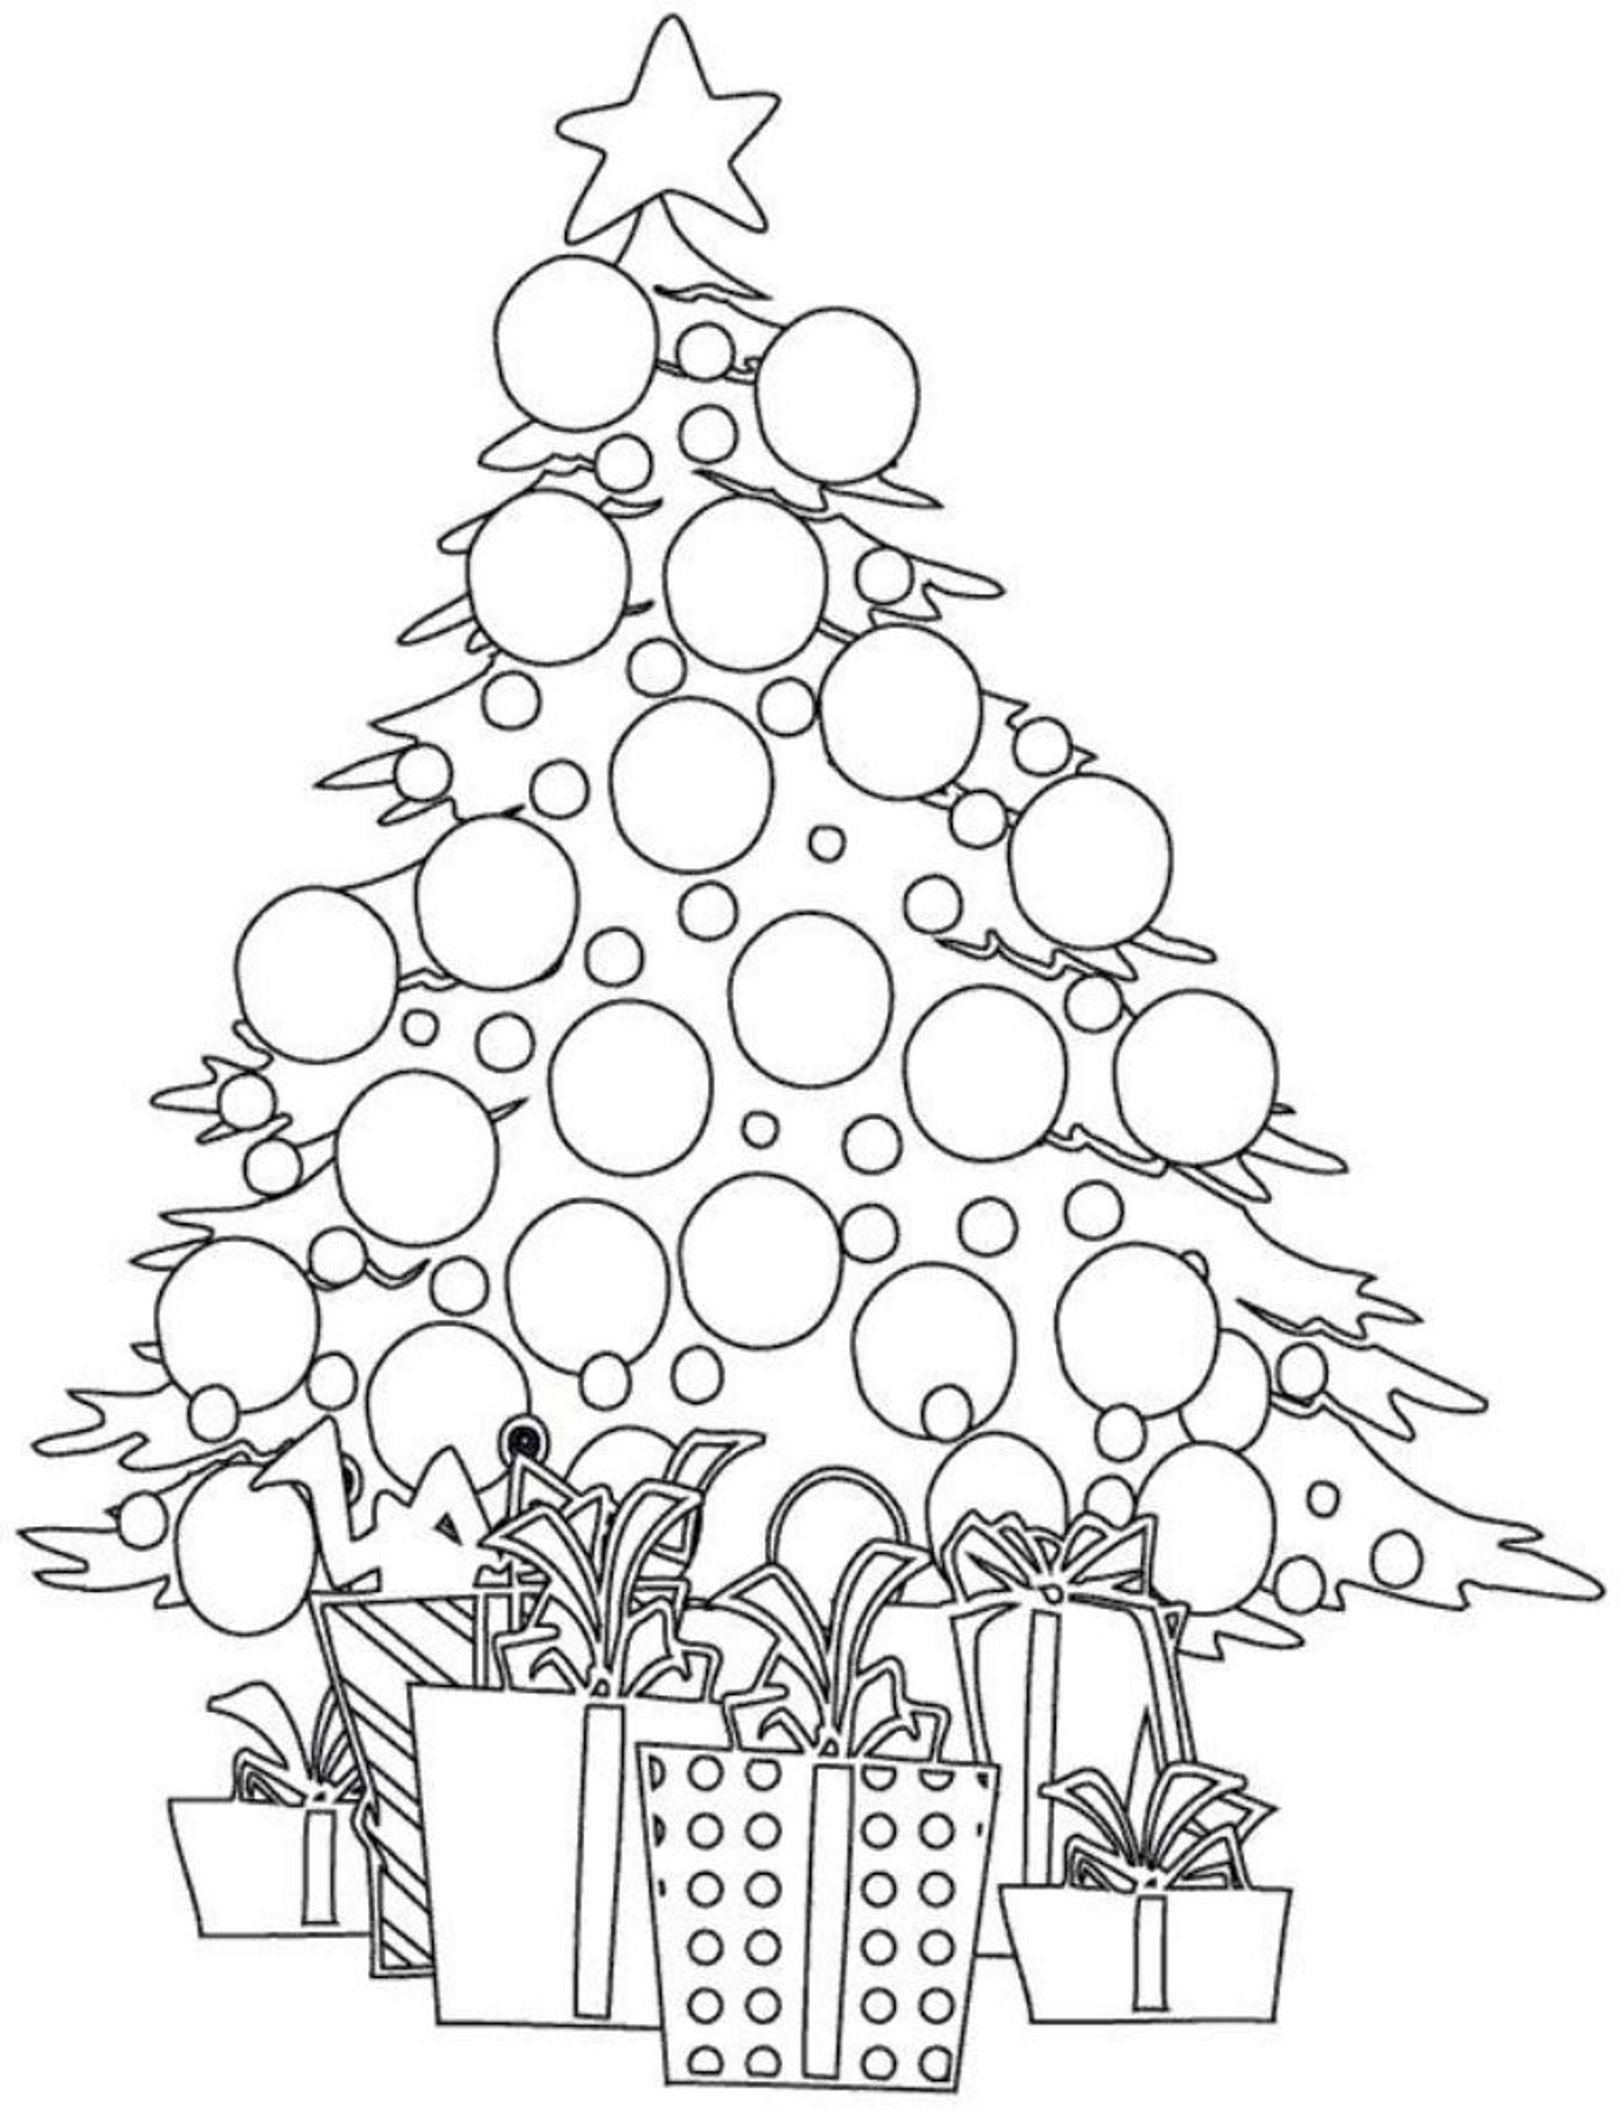 Christmas Tree Coloring Pages With Presents And For Kids